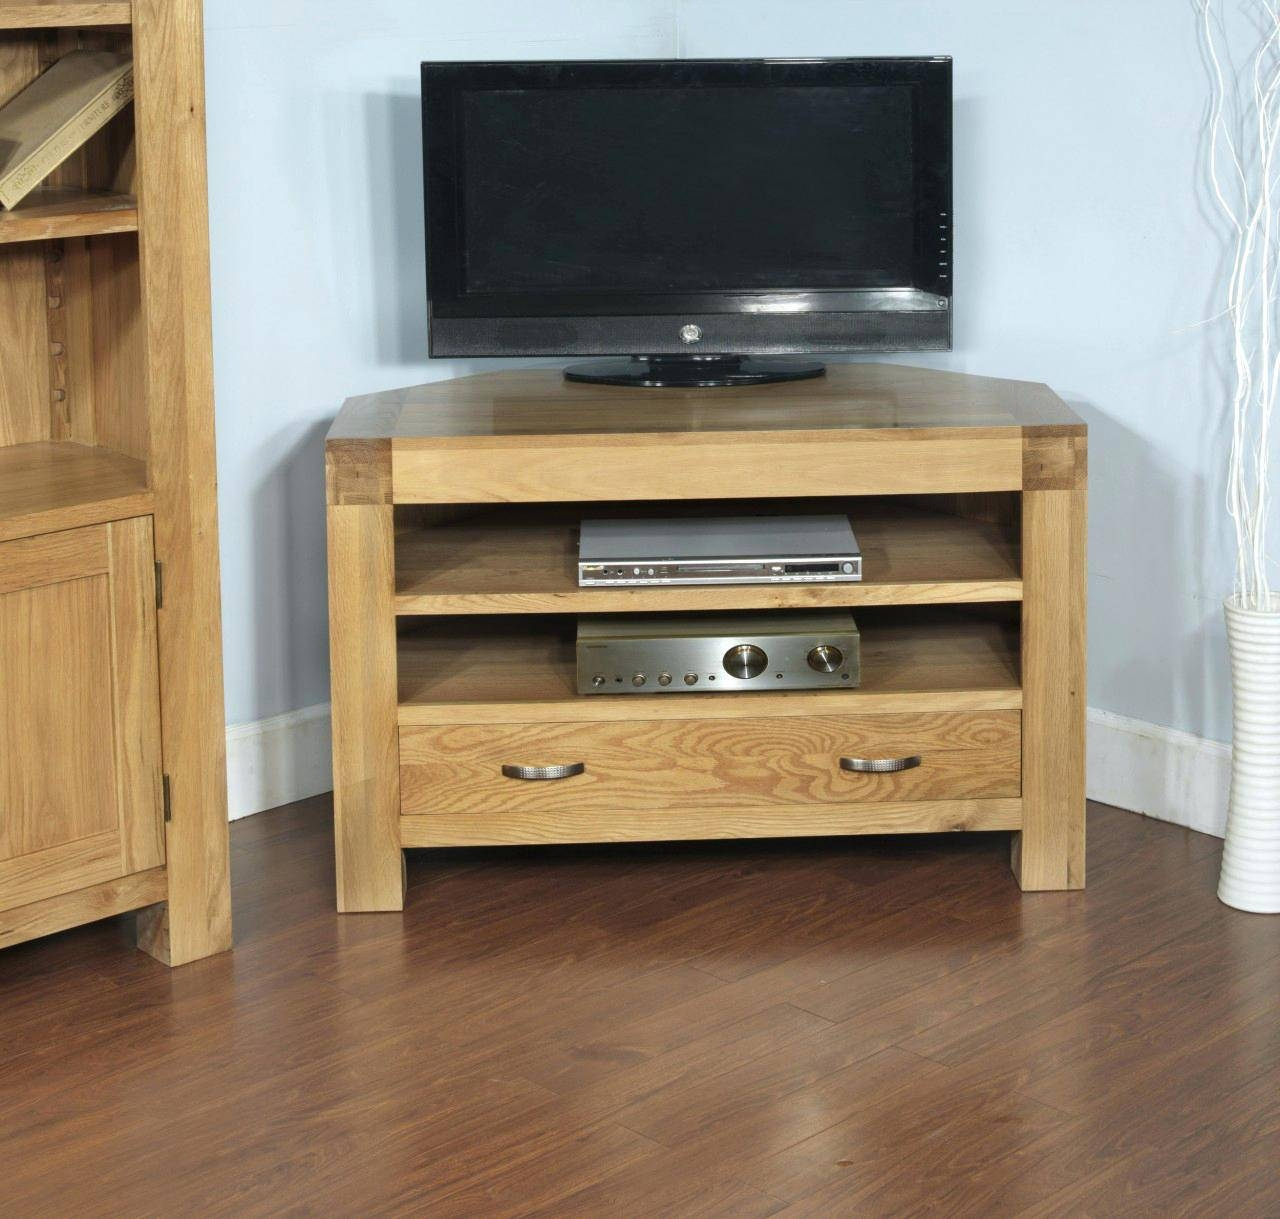 Tv Stand : Small Corner Tv Stands For Flat Screens Uk Bright Wood For Corner Tv Stands With Drawers (View 14 of 15)